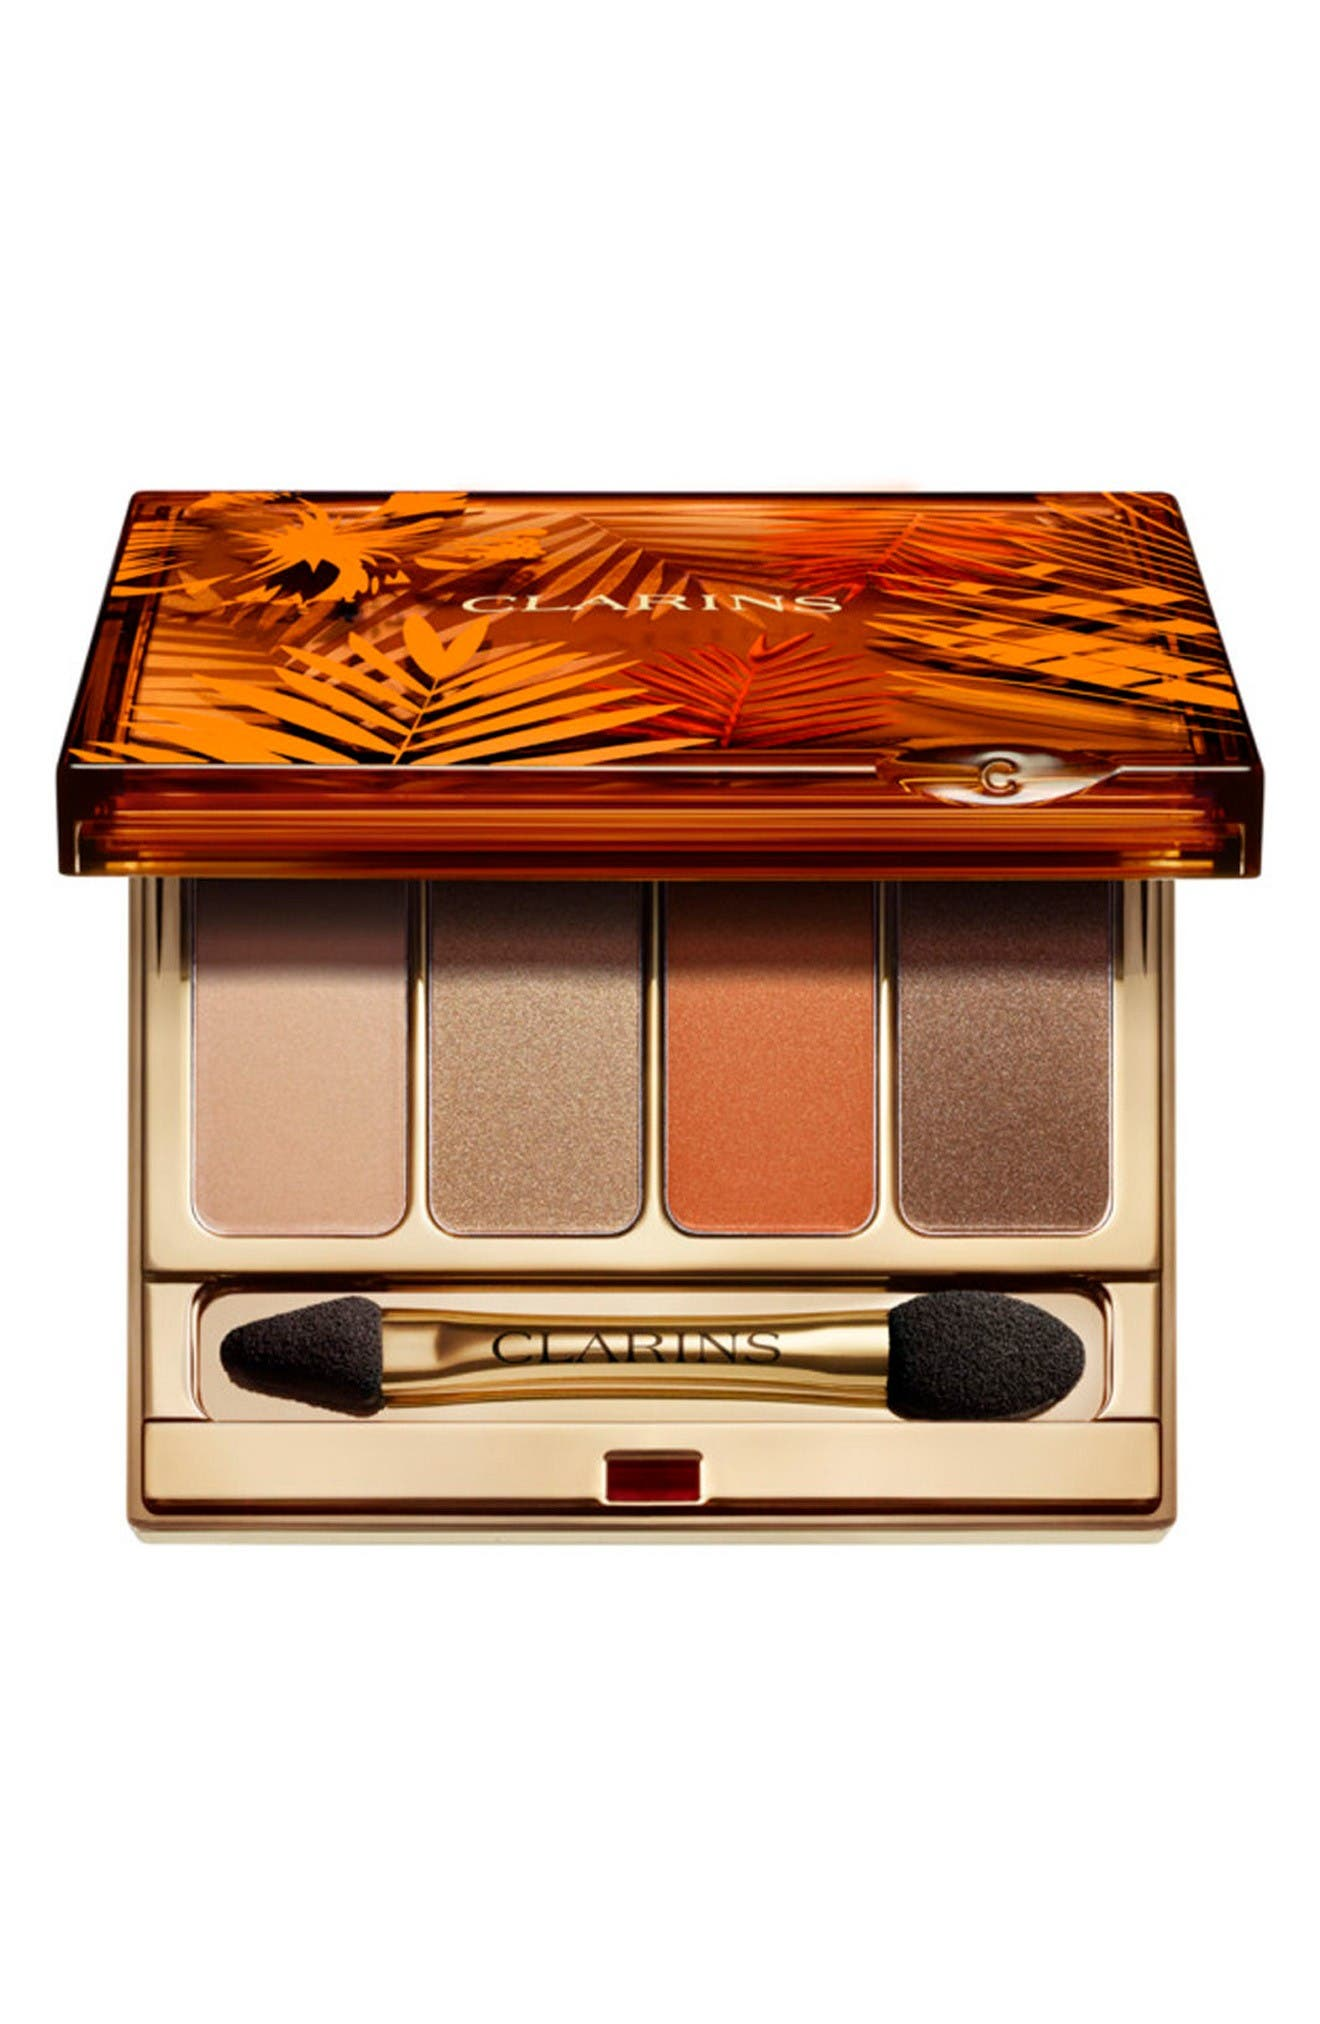 Clarins Sunkissed 4-Color Eyeshadow Palette (Limited Edition)